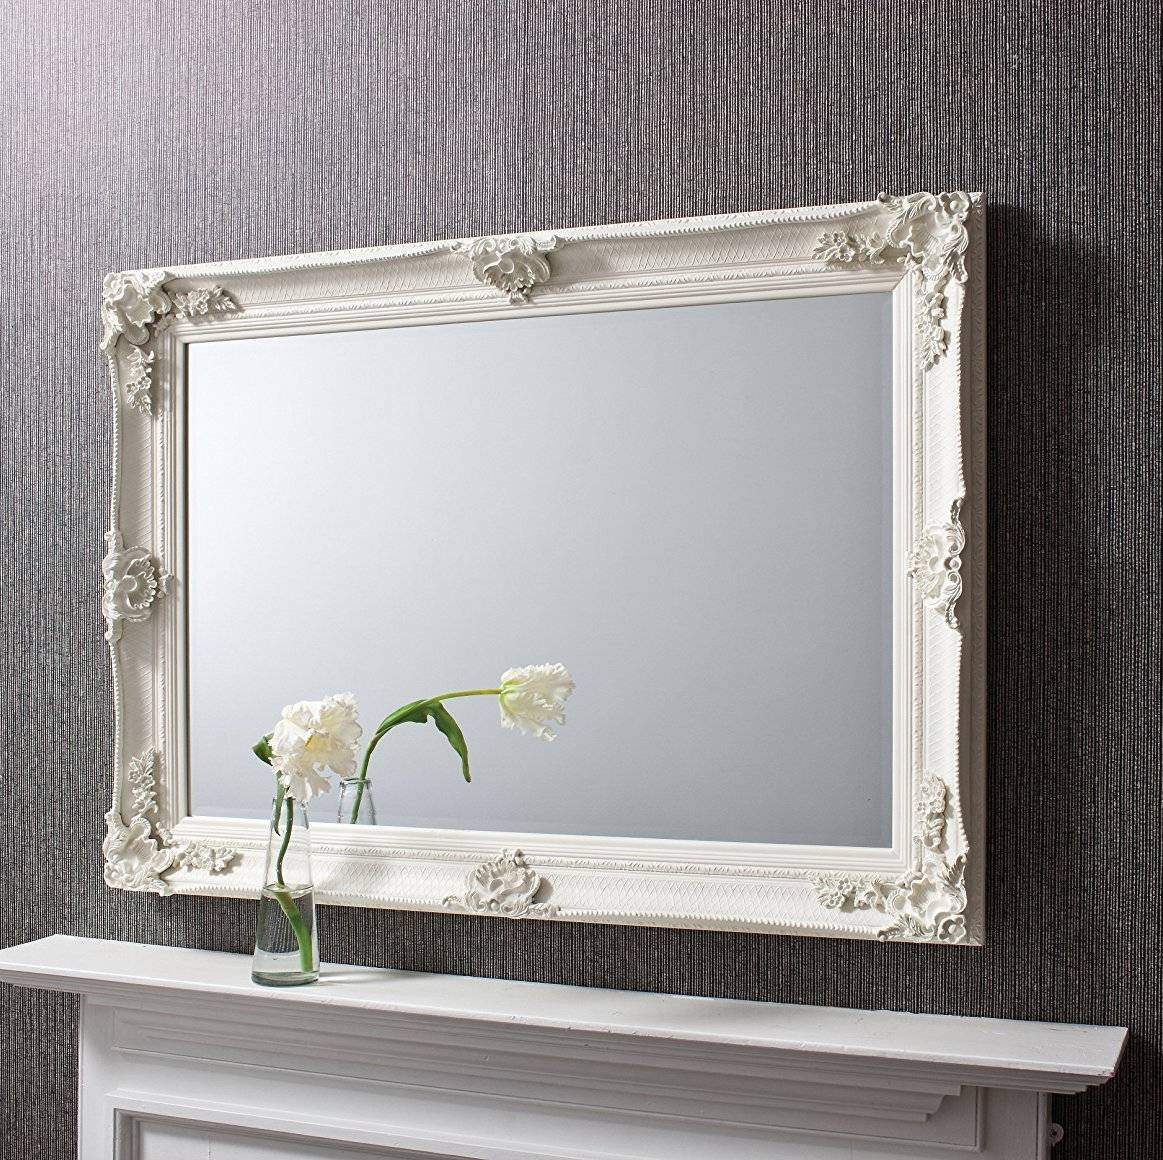 White And Cream Mirrors | Exclusive Mirrors intended for Oval Cream Mirrors (Image 15 of 15)